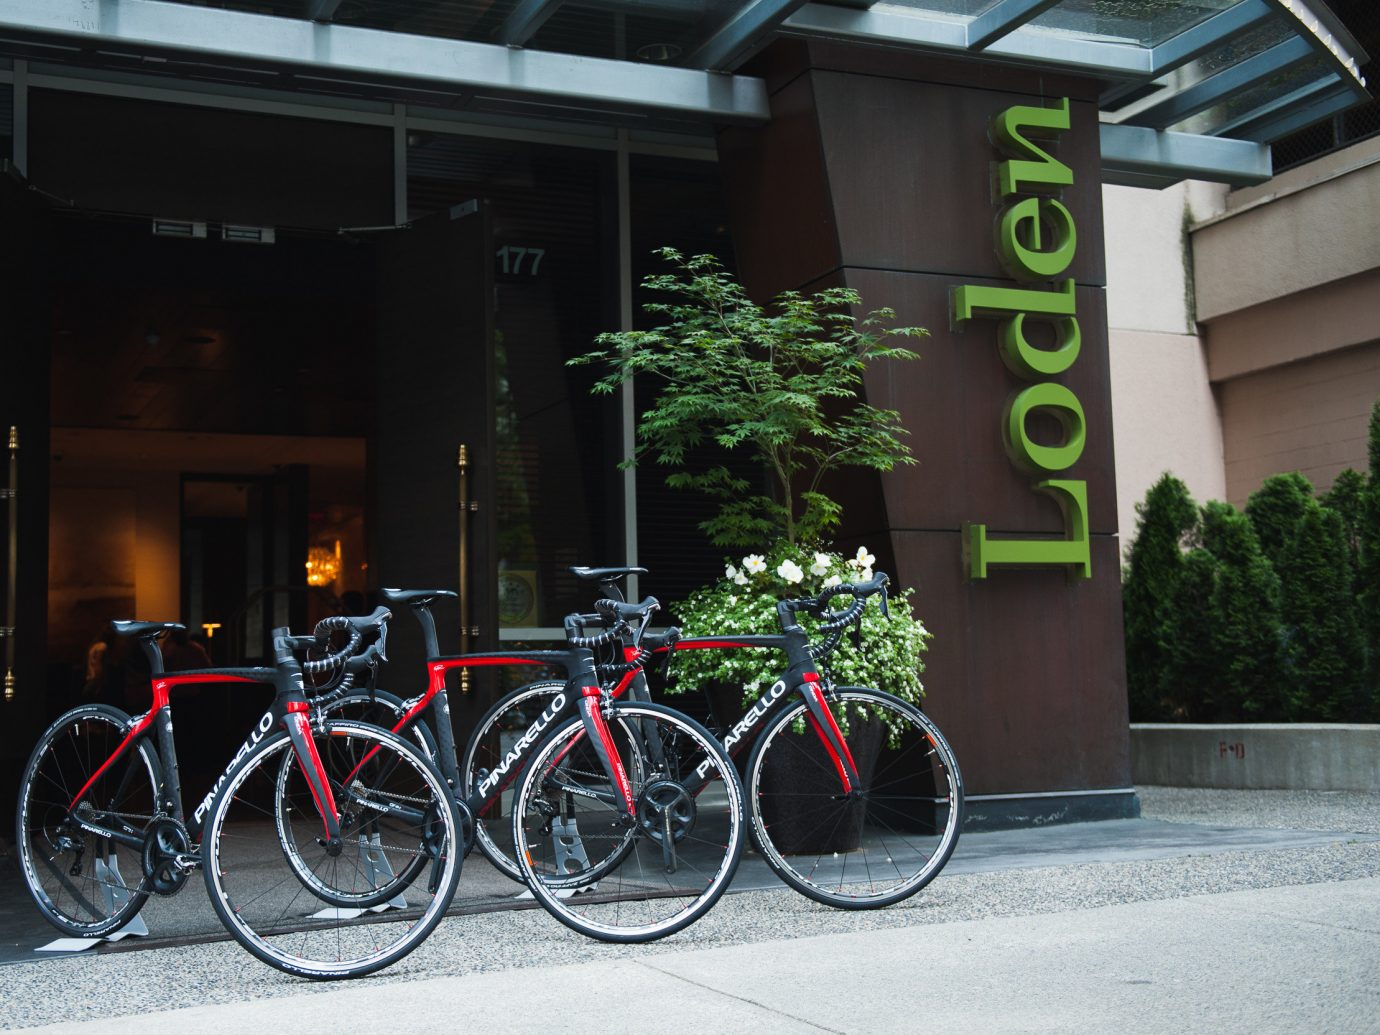 Hotels bicycle outdoor building sidewalk parked vehicle transport lane urban area road City leaning street cycling sports equipment curb